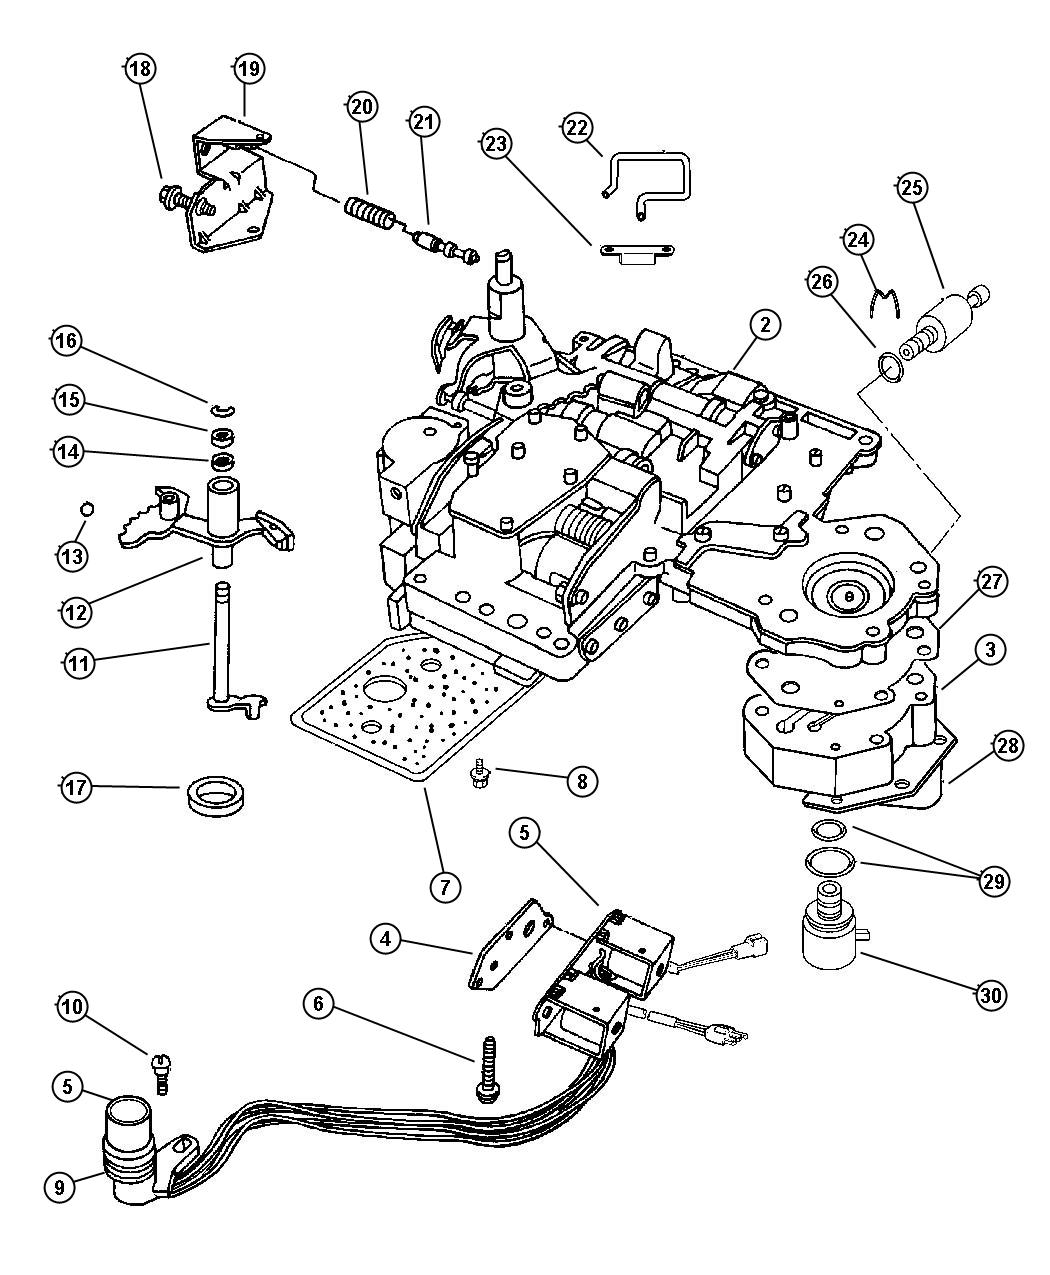 dodge ram tcc wiring diagram another blog about wiring diagram u2022 rh ok2  infoservice ru 2002 Dodge Ram 1500 Wiring Diagram 1998 dodge ram 1500 fog  light ...